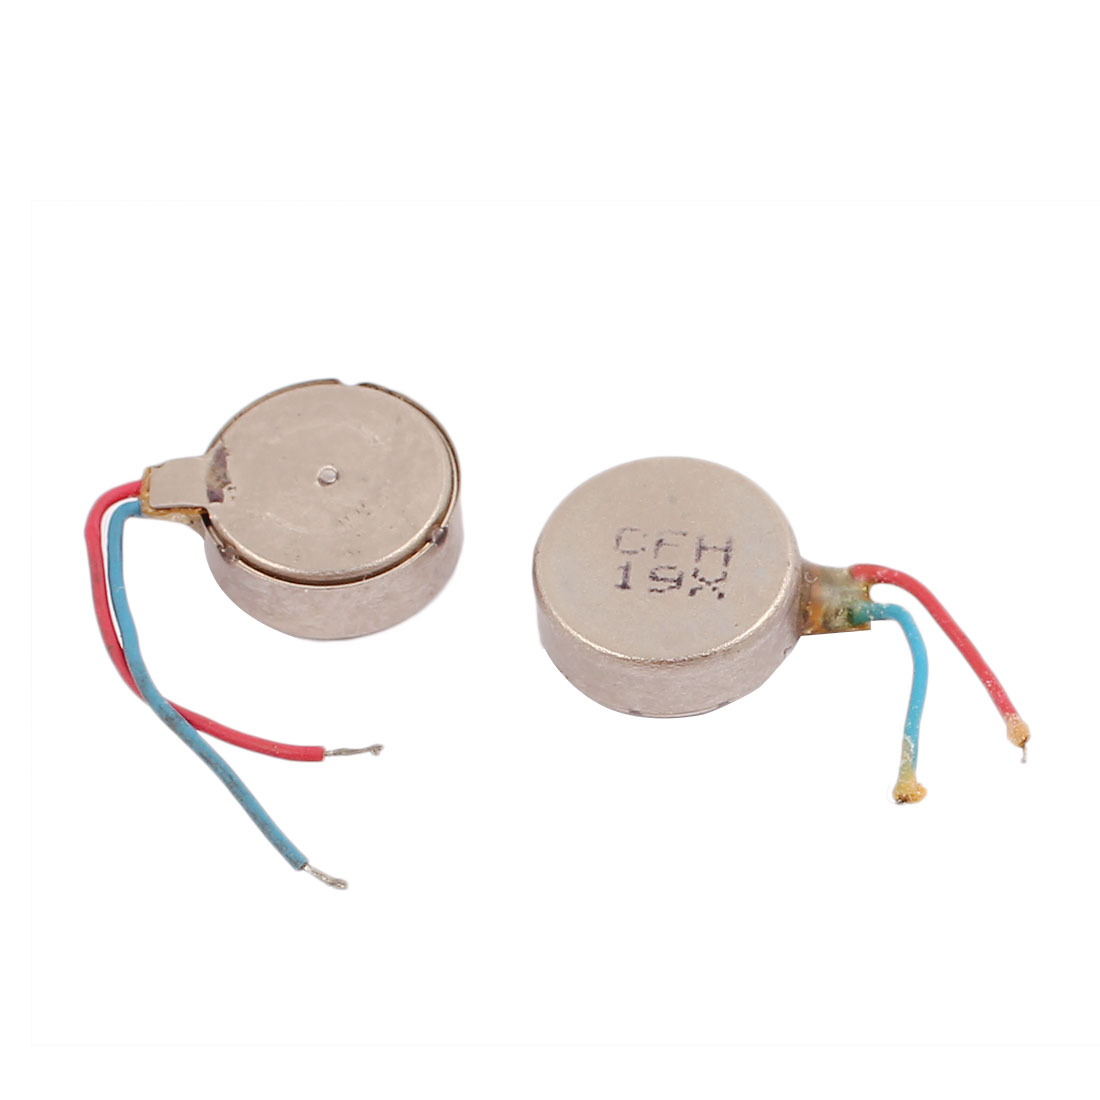 2Pcs DC3V 12000RPM Mobile Phone Vibrating Motor Flat Coin Vibration Mini Motor